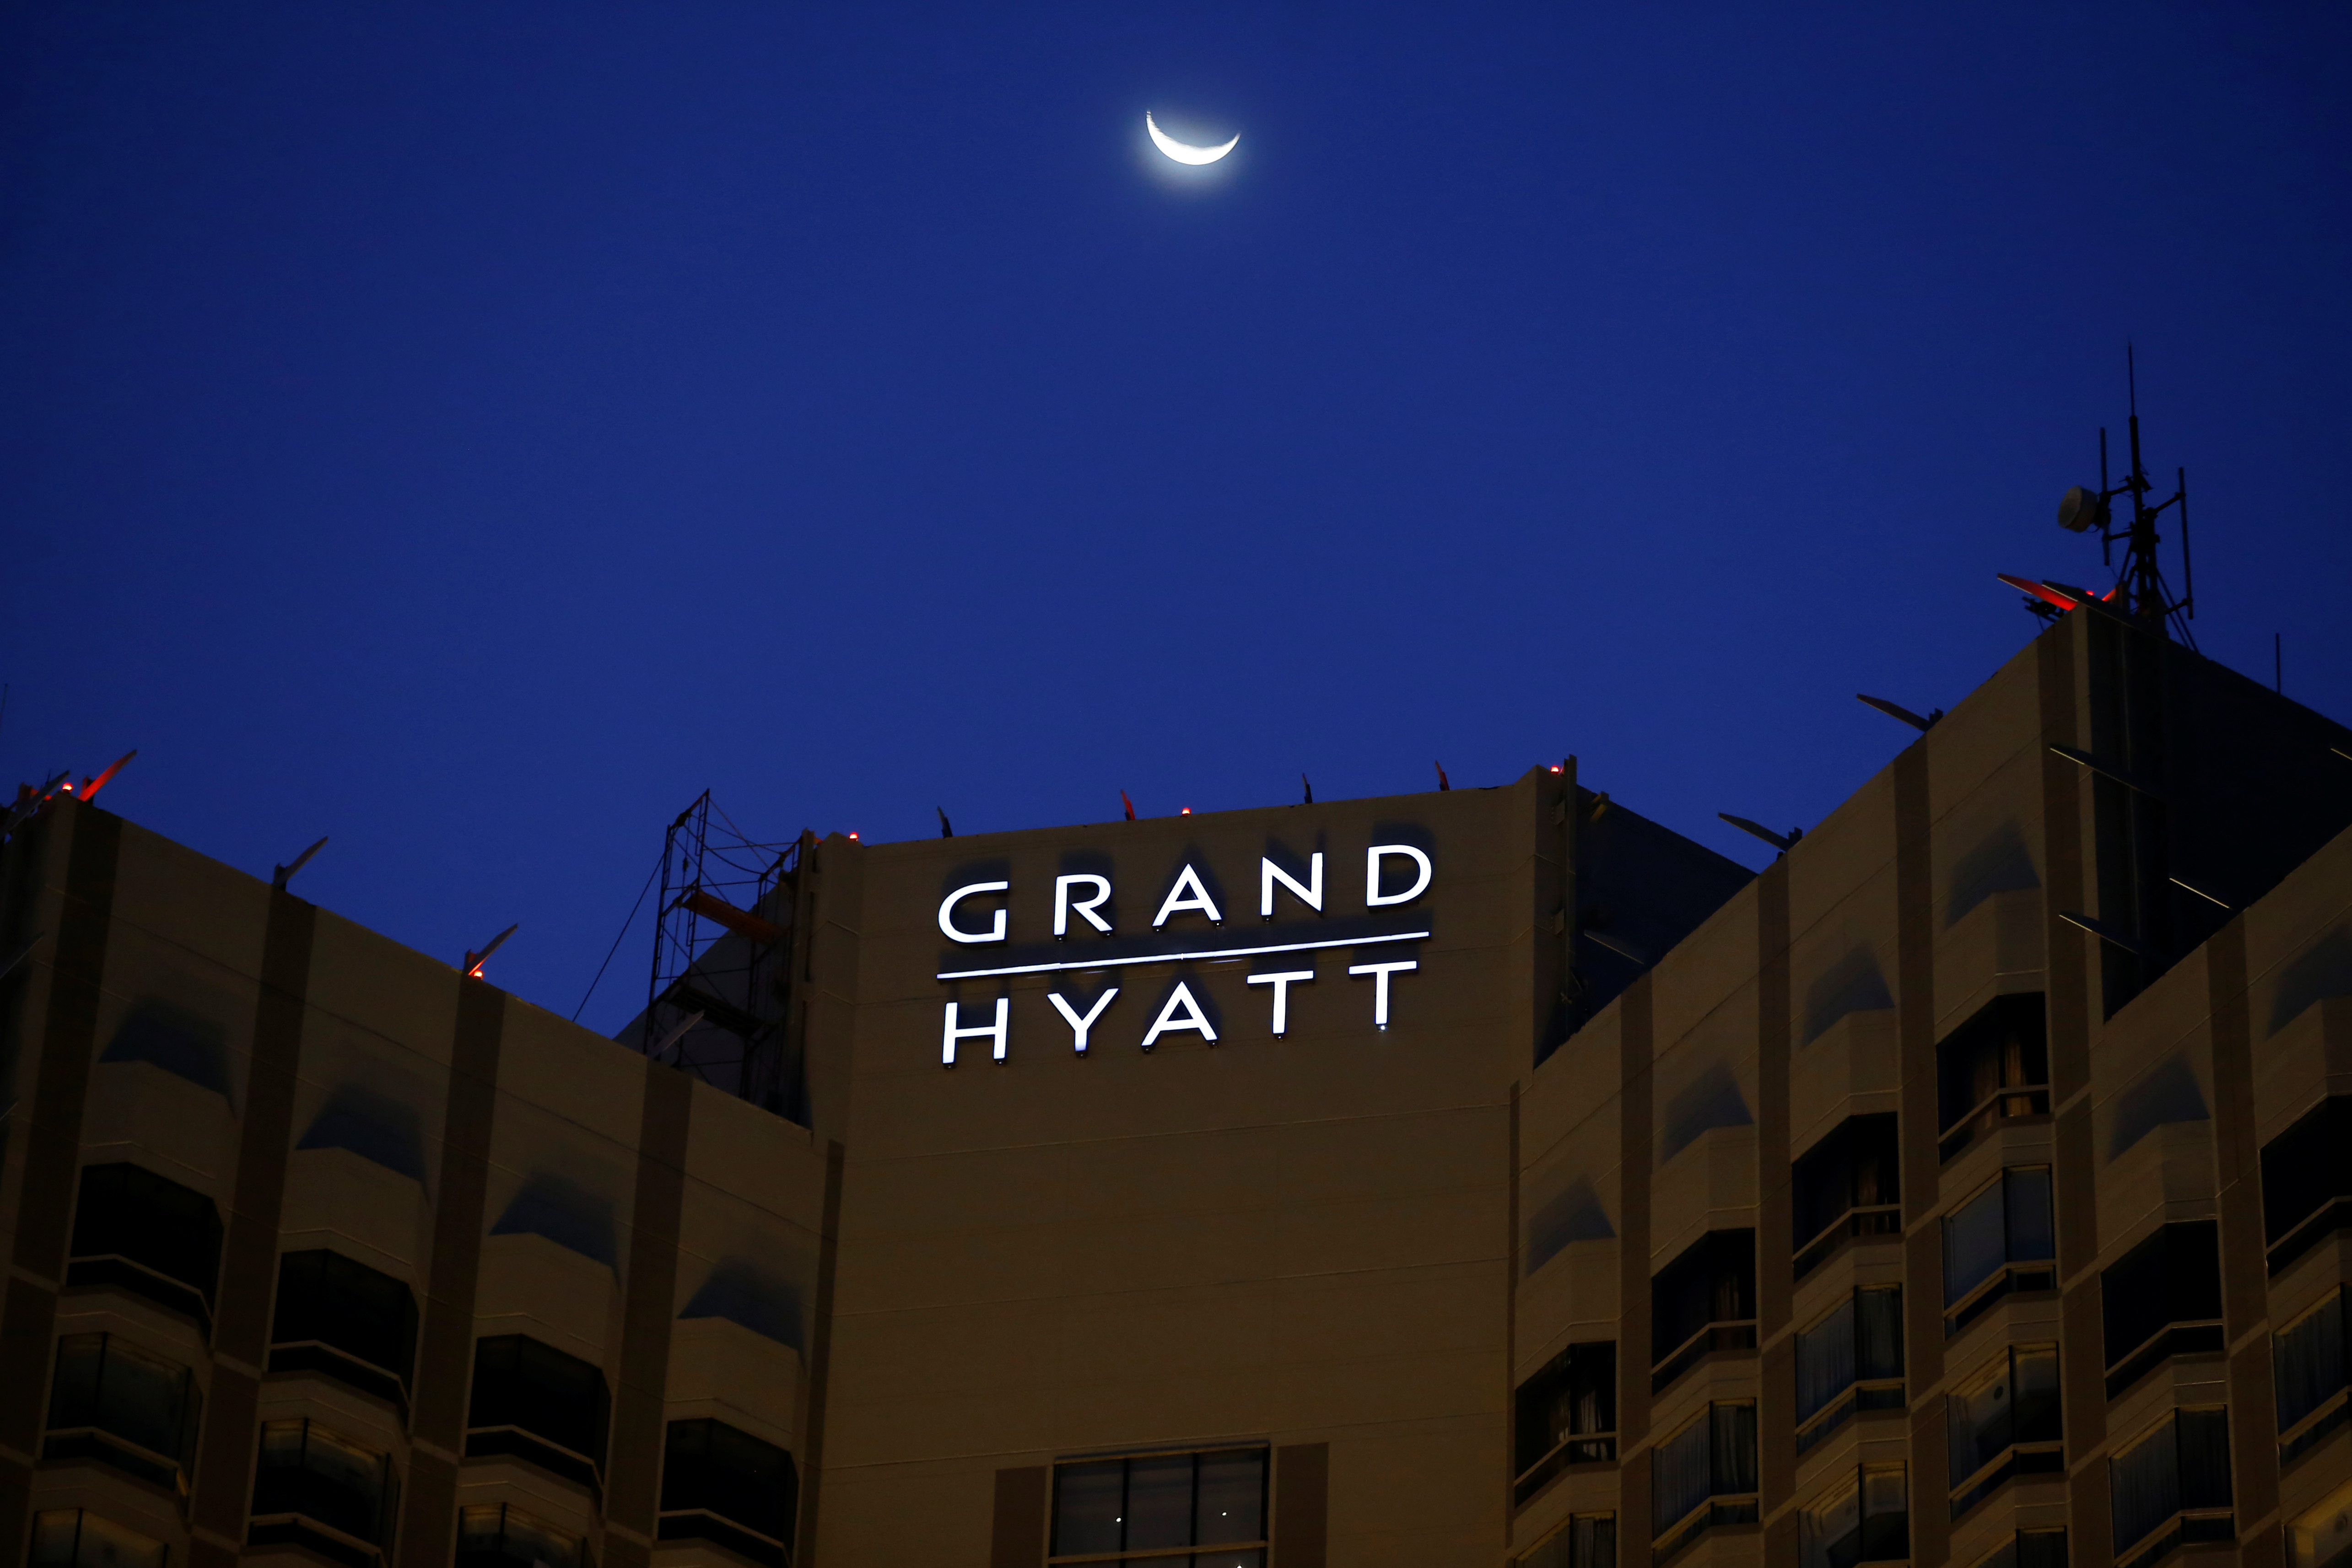 The exterior of the Grand Hyatt hotel is pictured during the dusk, following the coronavirus disease (COVID-19) outbreak, in Jakarta, Indonesia, June 25, 2020. Picture taken June 25, 2020. REUTERS/Willy Kurniawan